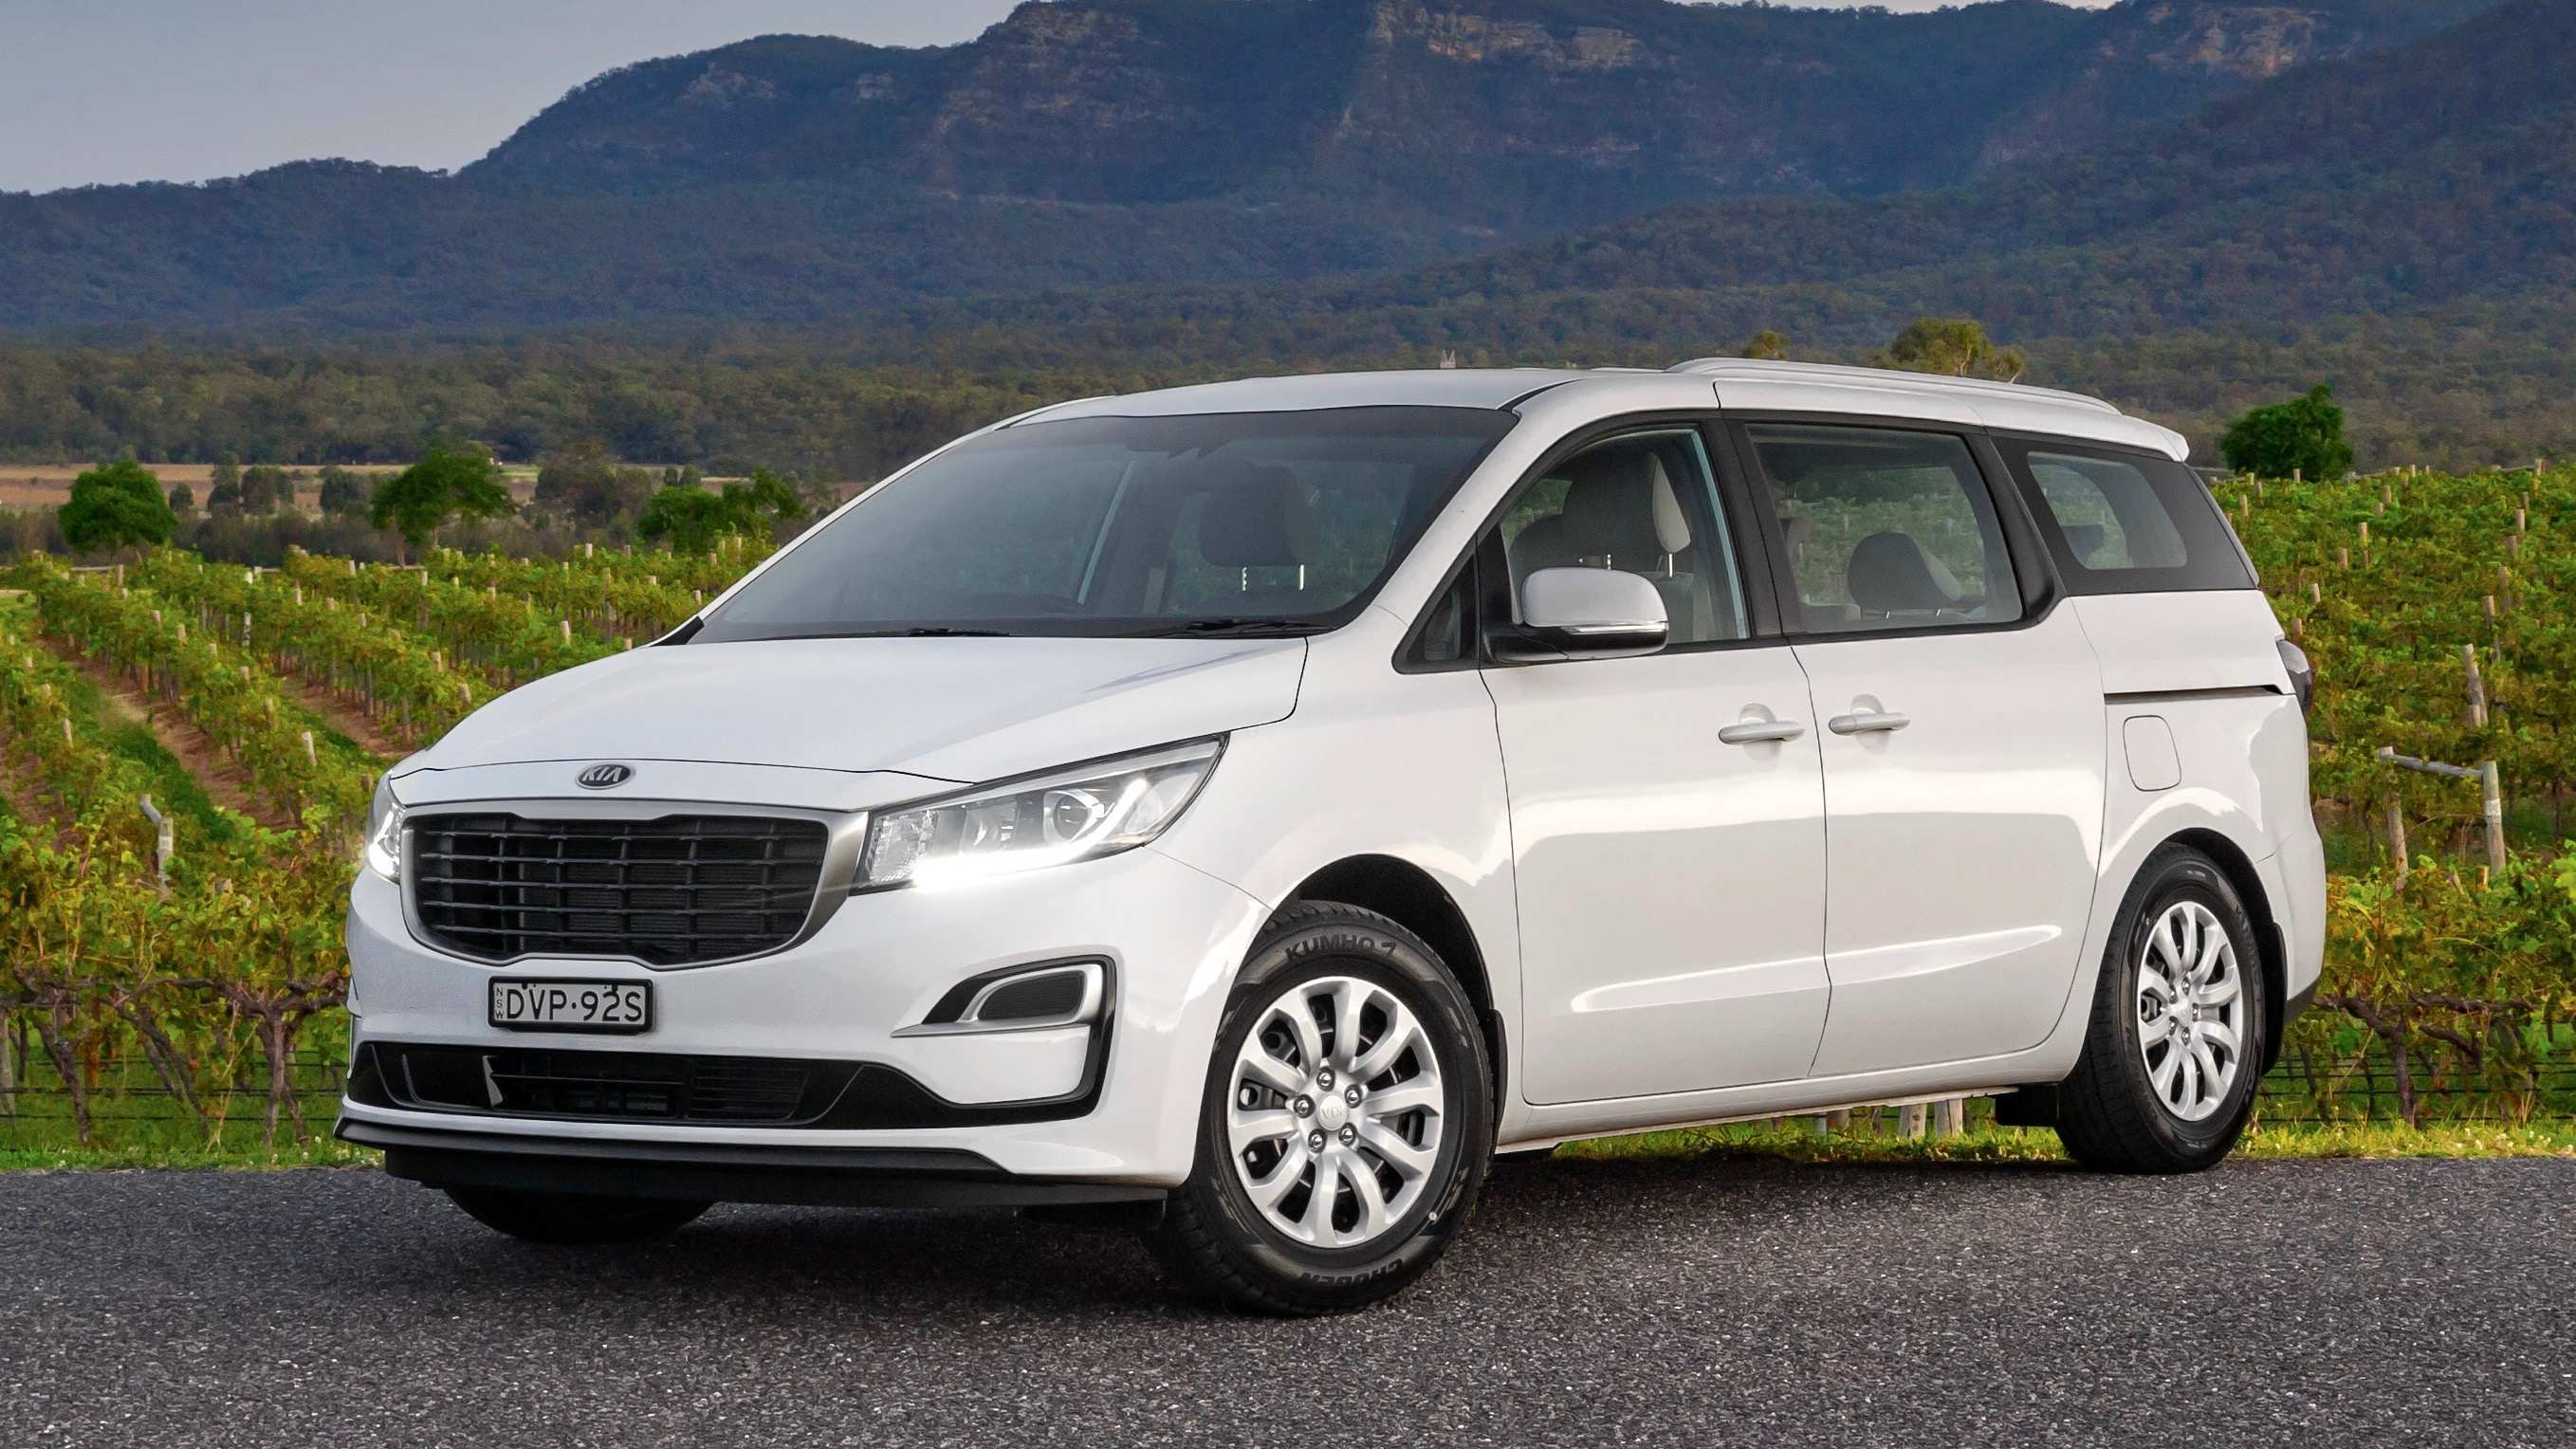 60 The Kia Grand Carnival 2019 Review Prices with Kia Grand Carnival 2019 Review